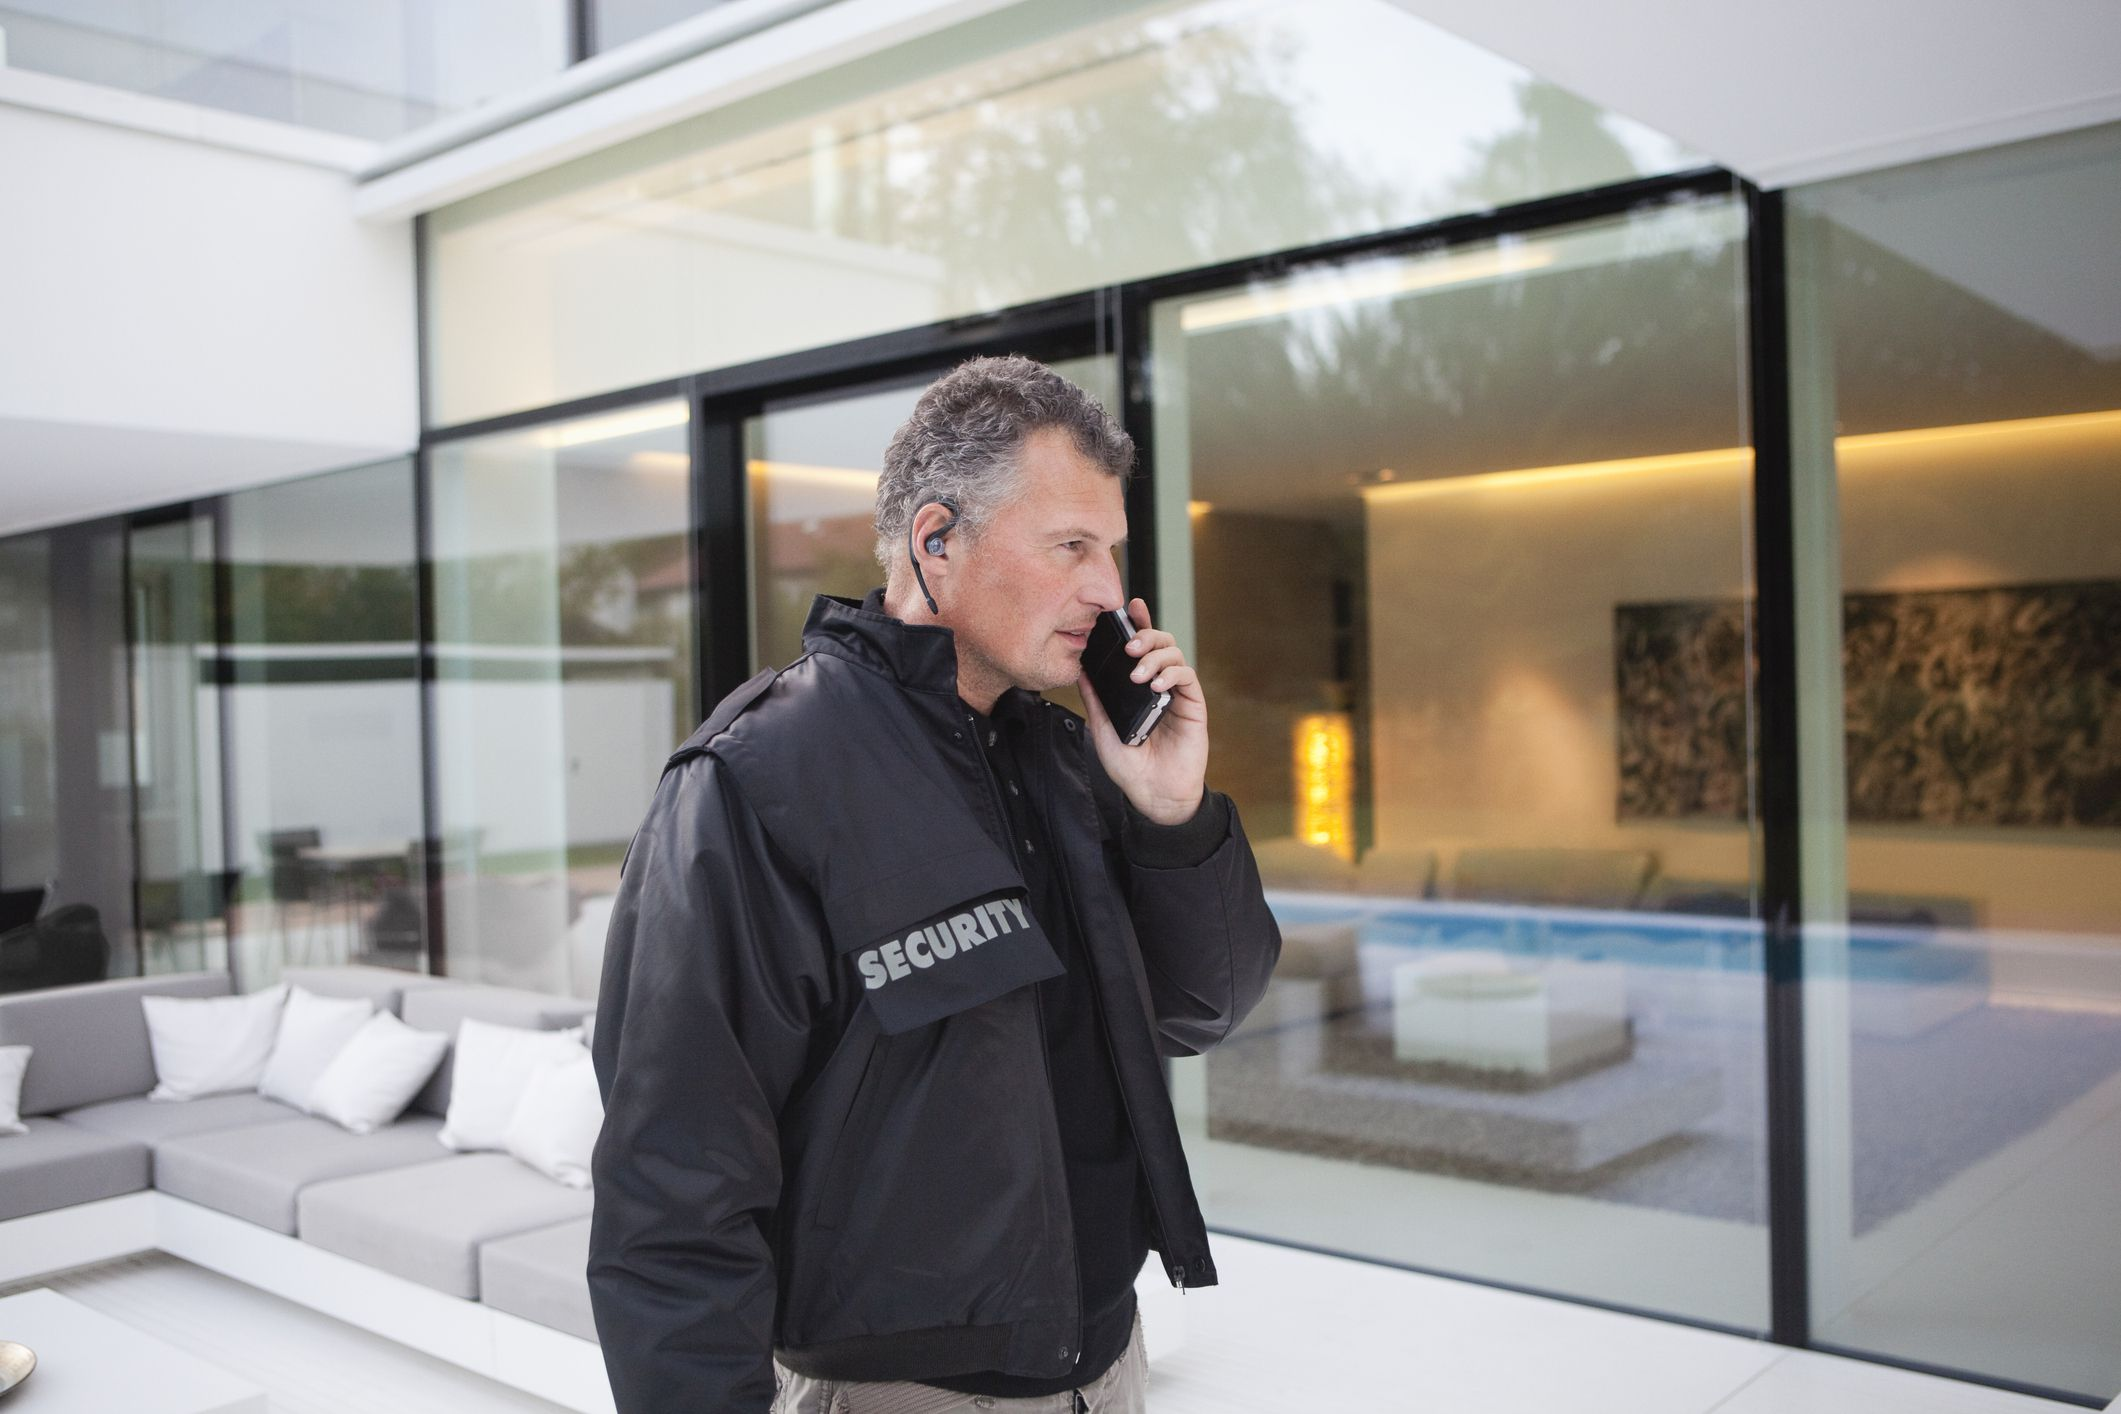 Pros And Cons Of Hiring Home Security Guards